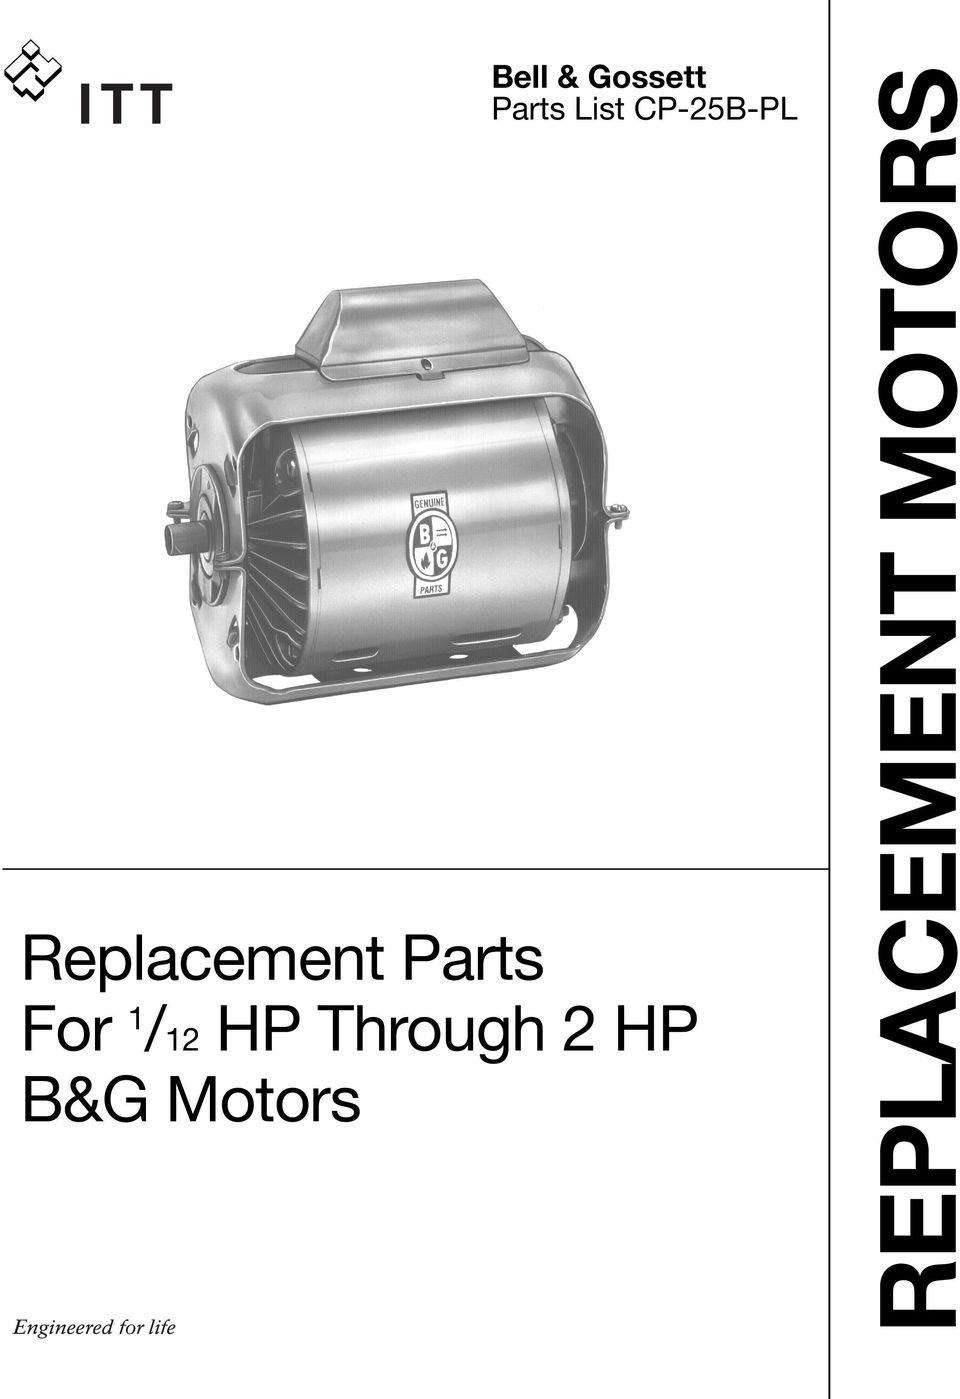 Replacement Parts For 1 12 Hp Through 2 Bg Motors Bell Amp Gossett Wiring Diagram